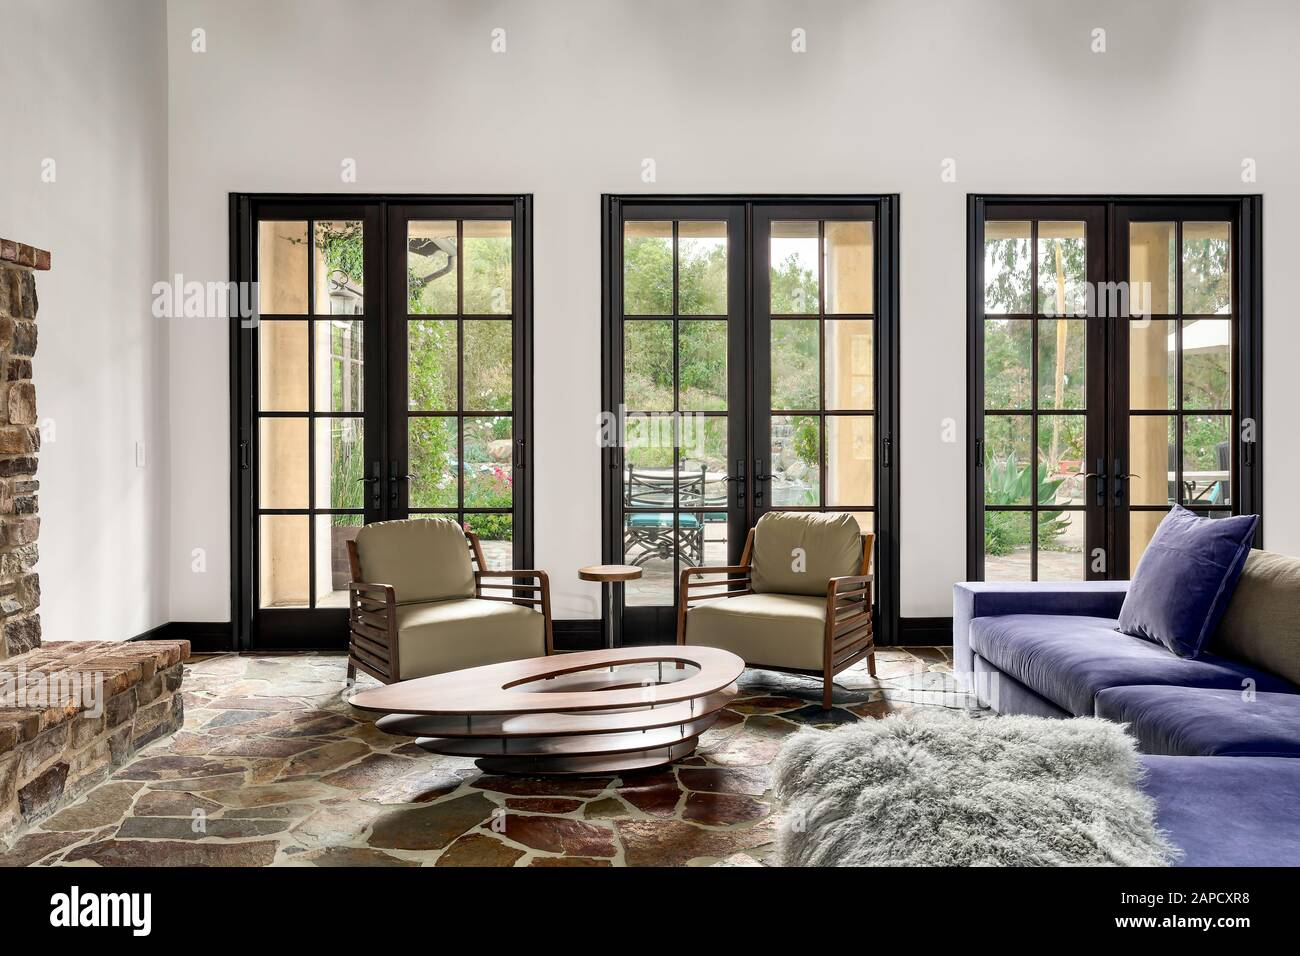 One Point Perspective Of Living Room Furnishings With View Outisde Stock Photo Alamy